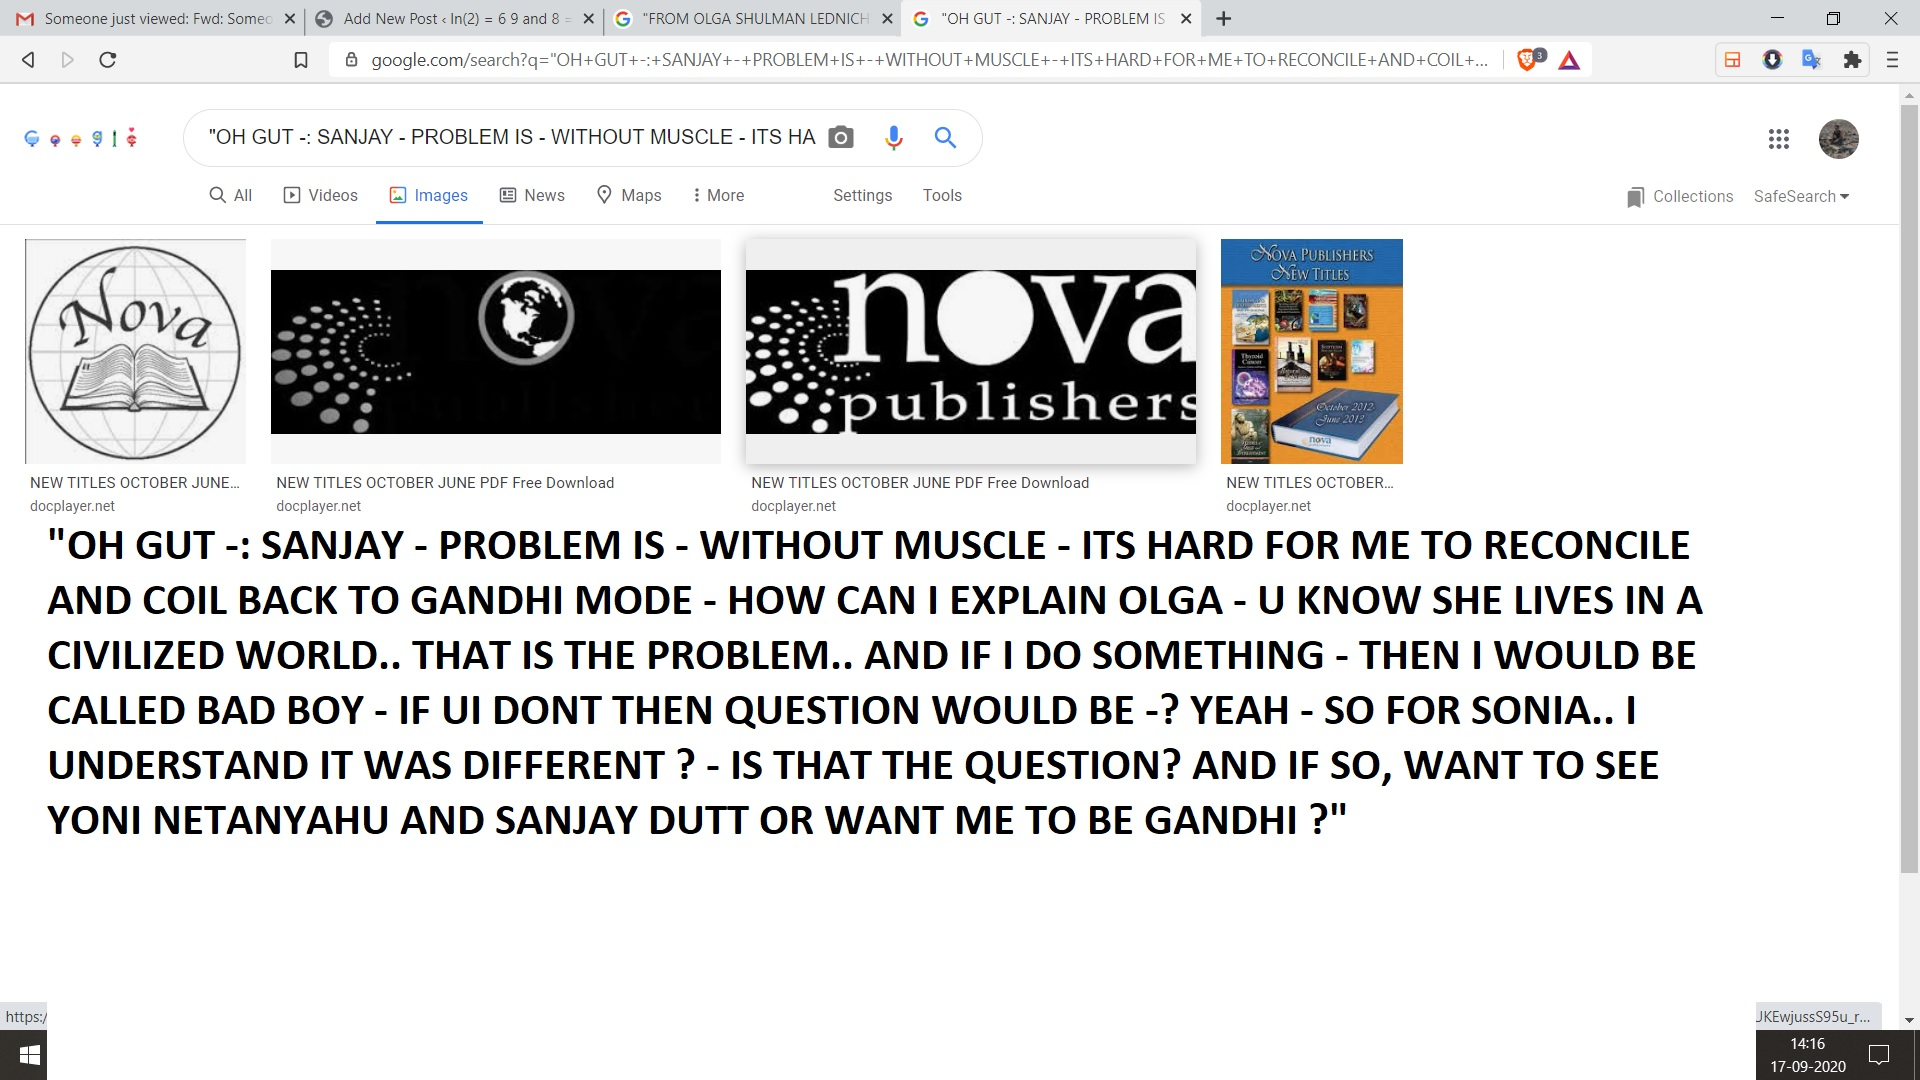 """OH GUT -: SANJAY - PROBLME IS - WITHOUT MUSCLE - ITS HARD FOR ME TO RECONCILE AND COIL BACK TO GANDHI MODE - HOW CAN I EXPLAIN OLGA - U KNOW SHE LIVES IN A CIVILIZED WORLD.. THAT IS THE PROBLEM.. AND IF I DO SOMETHING - THEN I WOULD BE CALED BAD BOY - IF UI DONT THEN QUESTION WOULD BE -? YEAH - SO FOR SONIA.. I UNDERSTAND IT WAS DIFFERENT ? - IS THAT THE QUESTION? AND IF SO, WANT TO SEE YONI NETANYAHU AND SANJAY DUTT OR WANT ME TO BE GANDHI ?"""